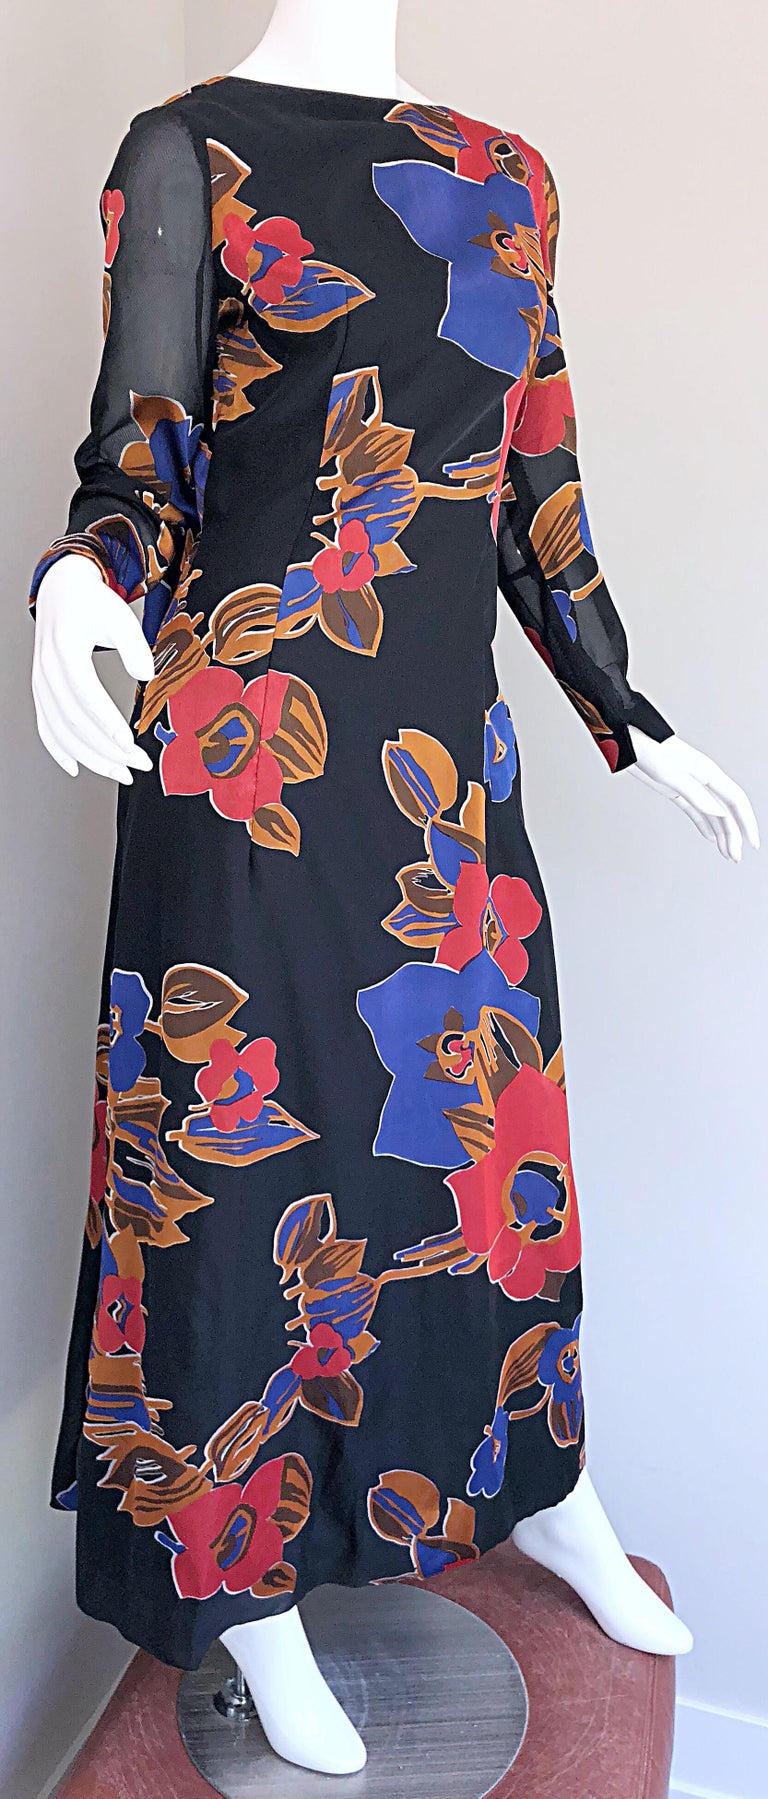 Women's 1960s John Boyle Bishop Black + Brown + Red Abstract Trained 60s Gown Maxi Dress For Sale